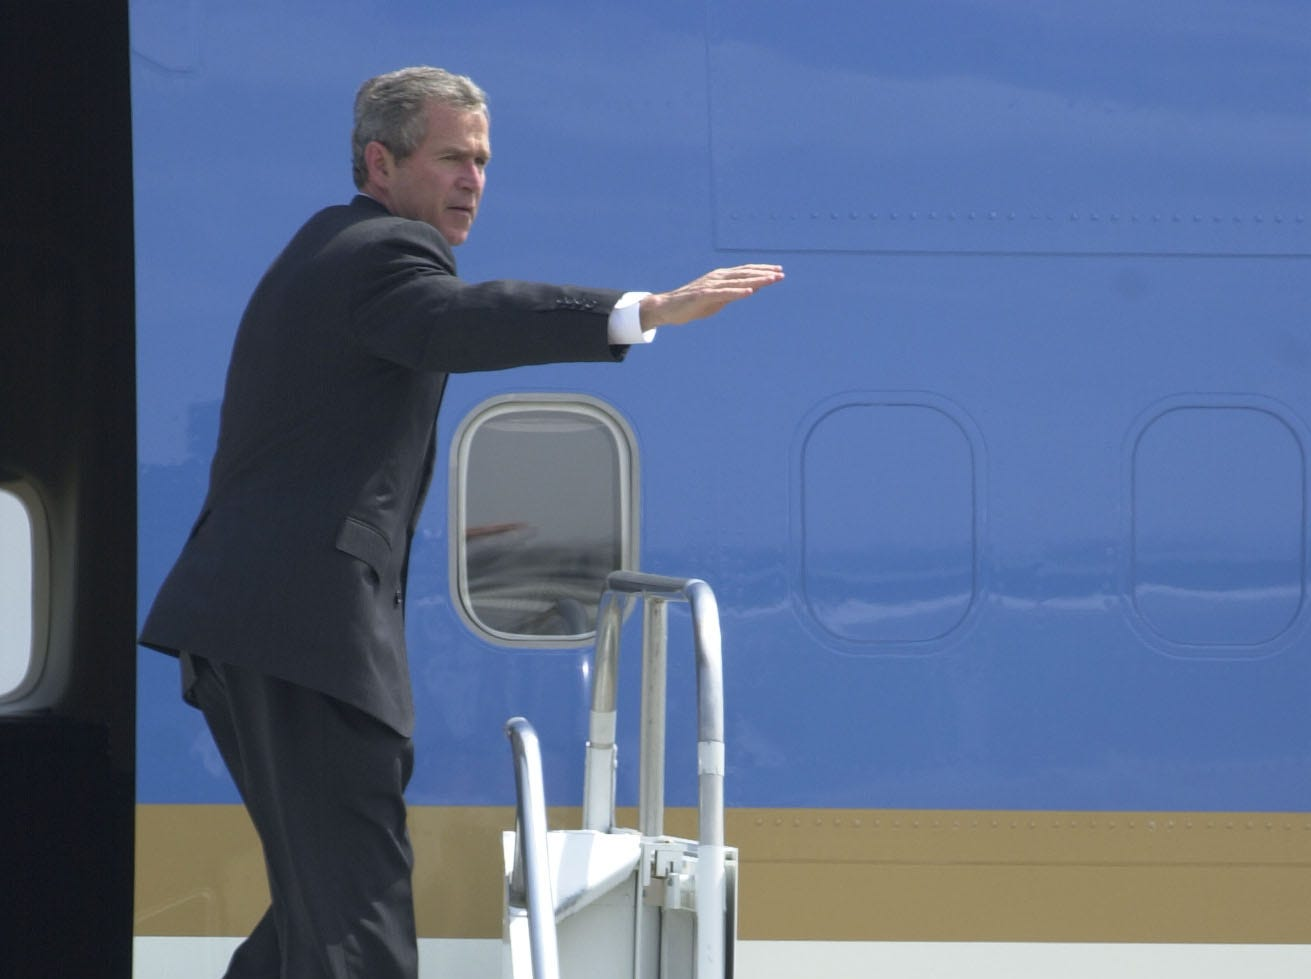 President George W. Bush waves goodbye from Air Force One April 8, 2002, at McGhee Tyson Air National Guard Base, after a visit and speech at the Civic Coliseum.